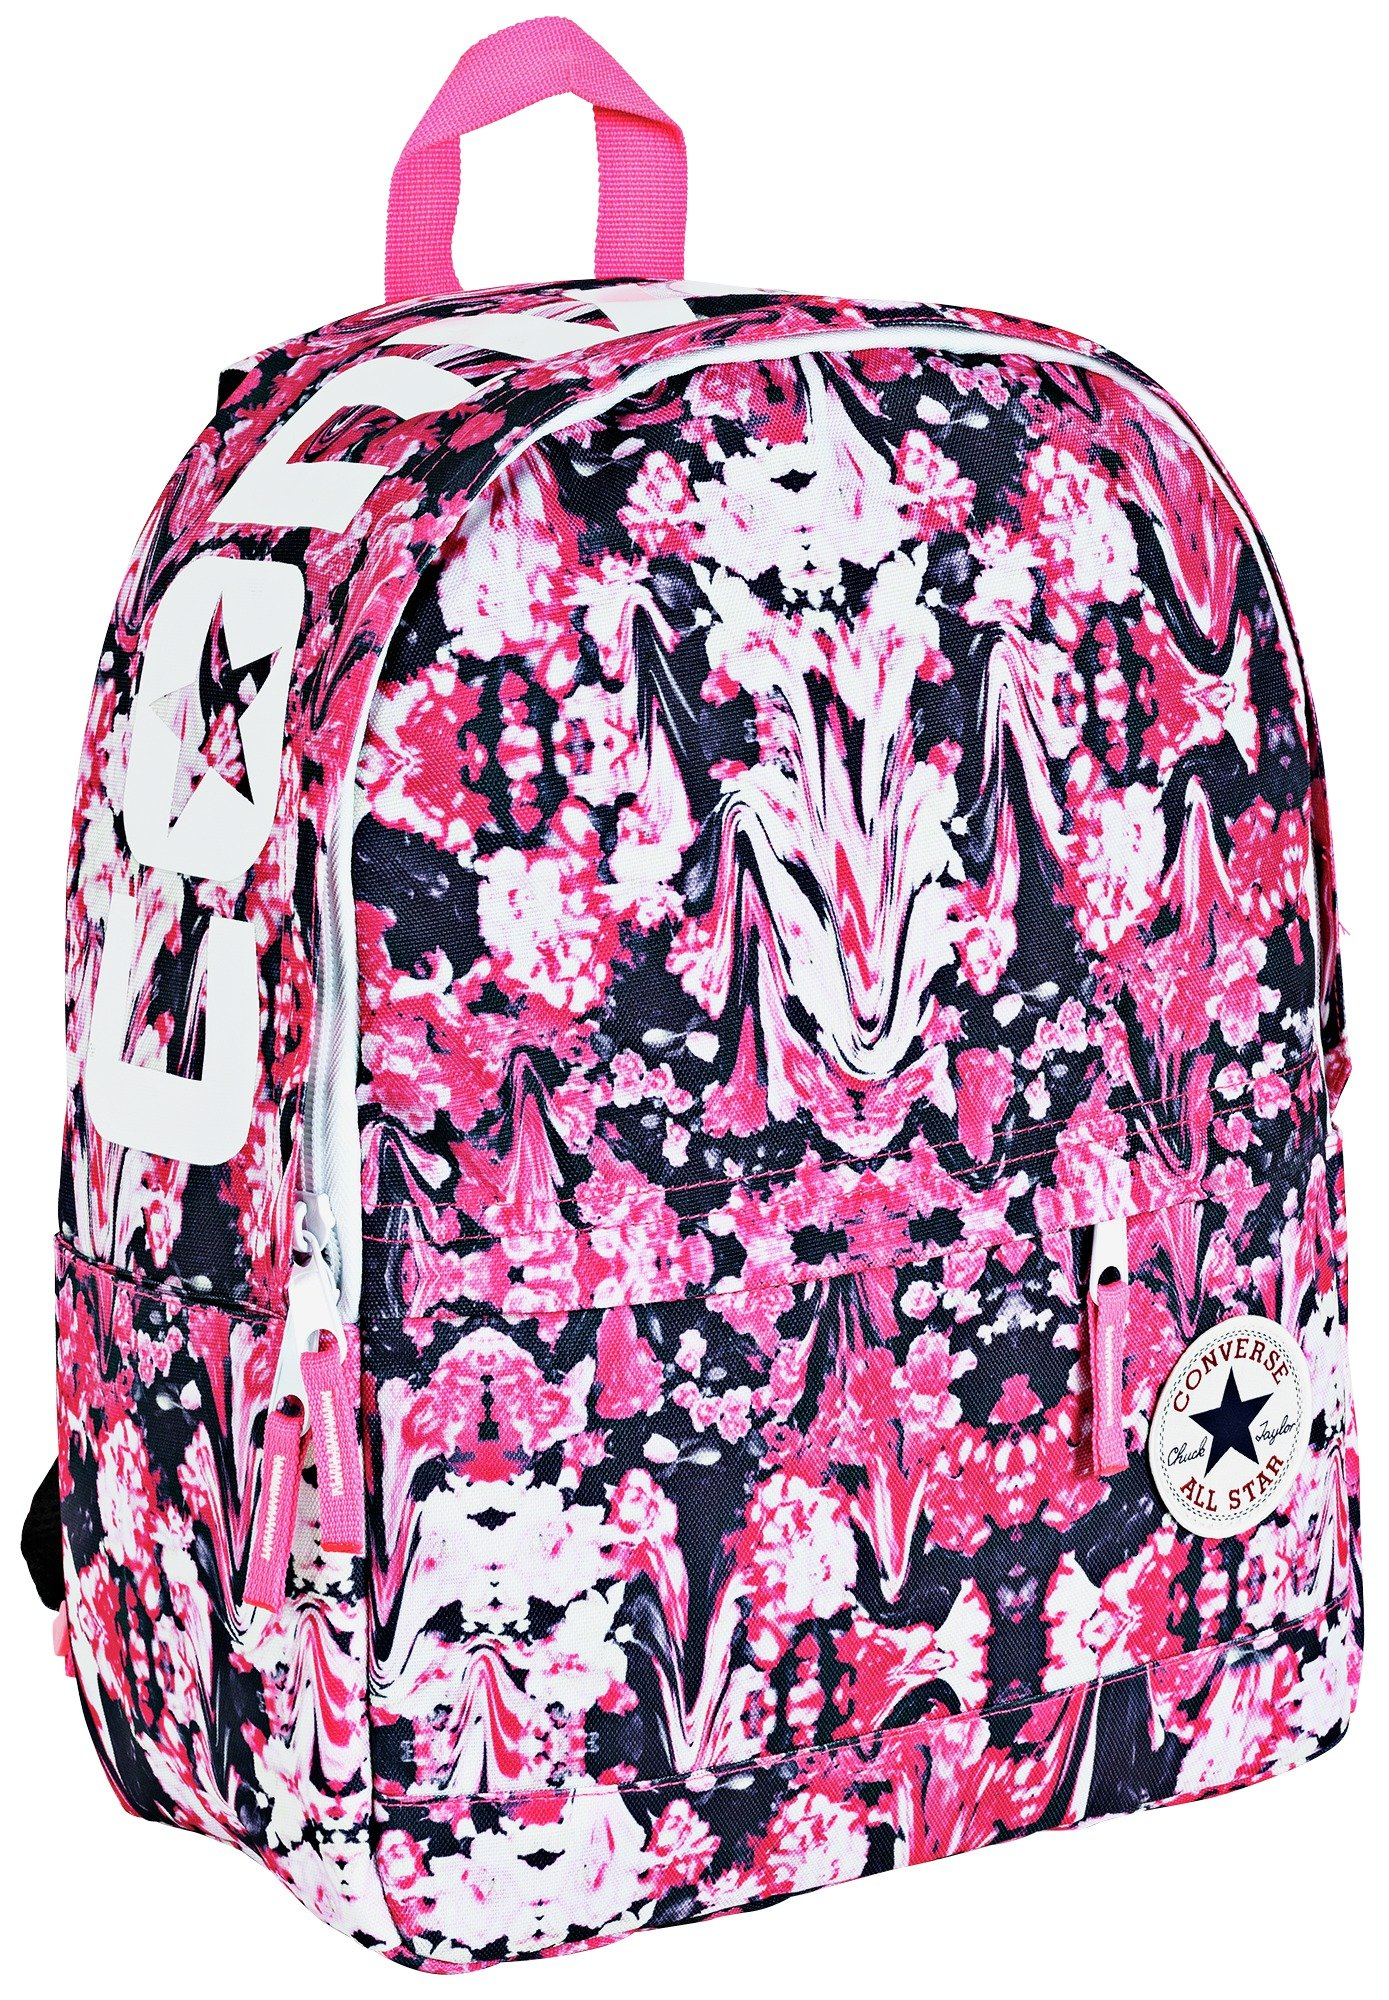 Image of Converse Daybreak Floral Print Backpack